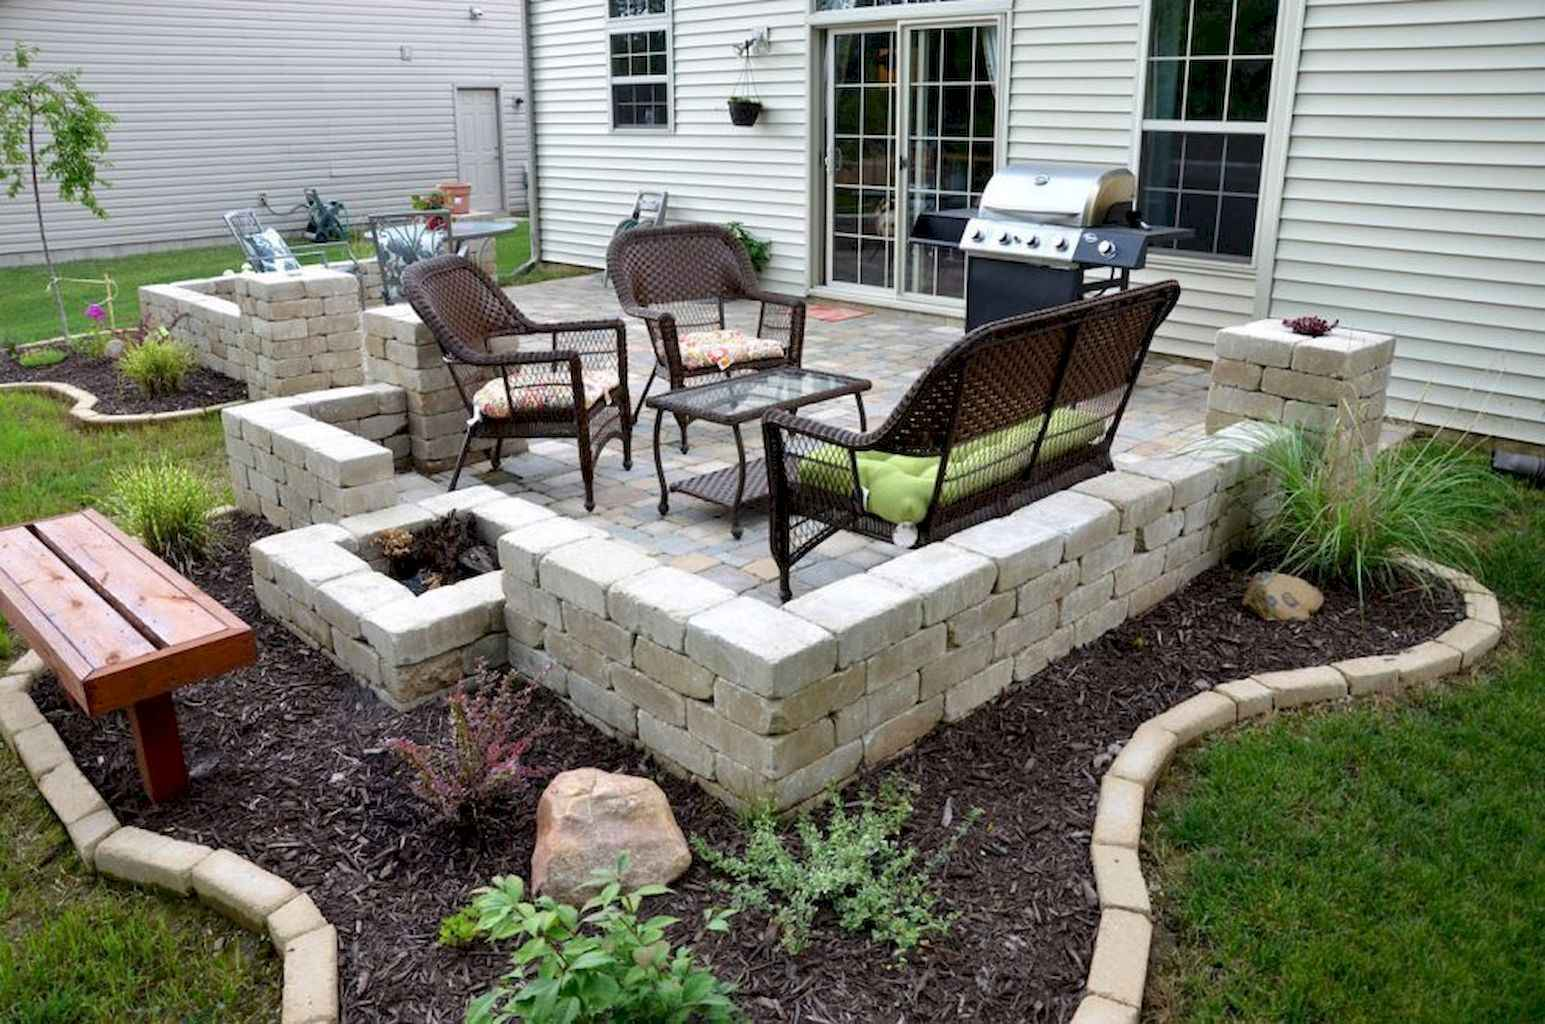 57 Awesome Small Patio on Budget Design Ideas